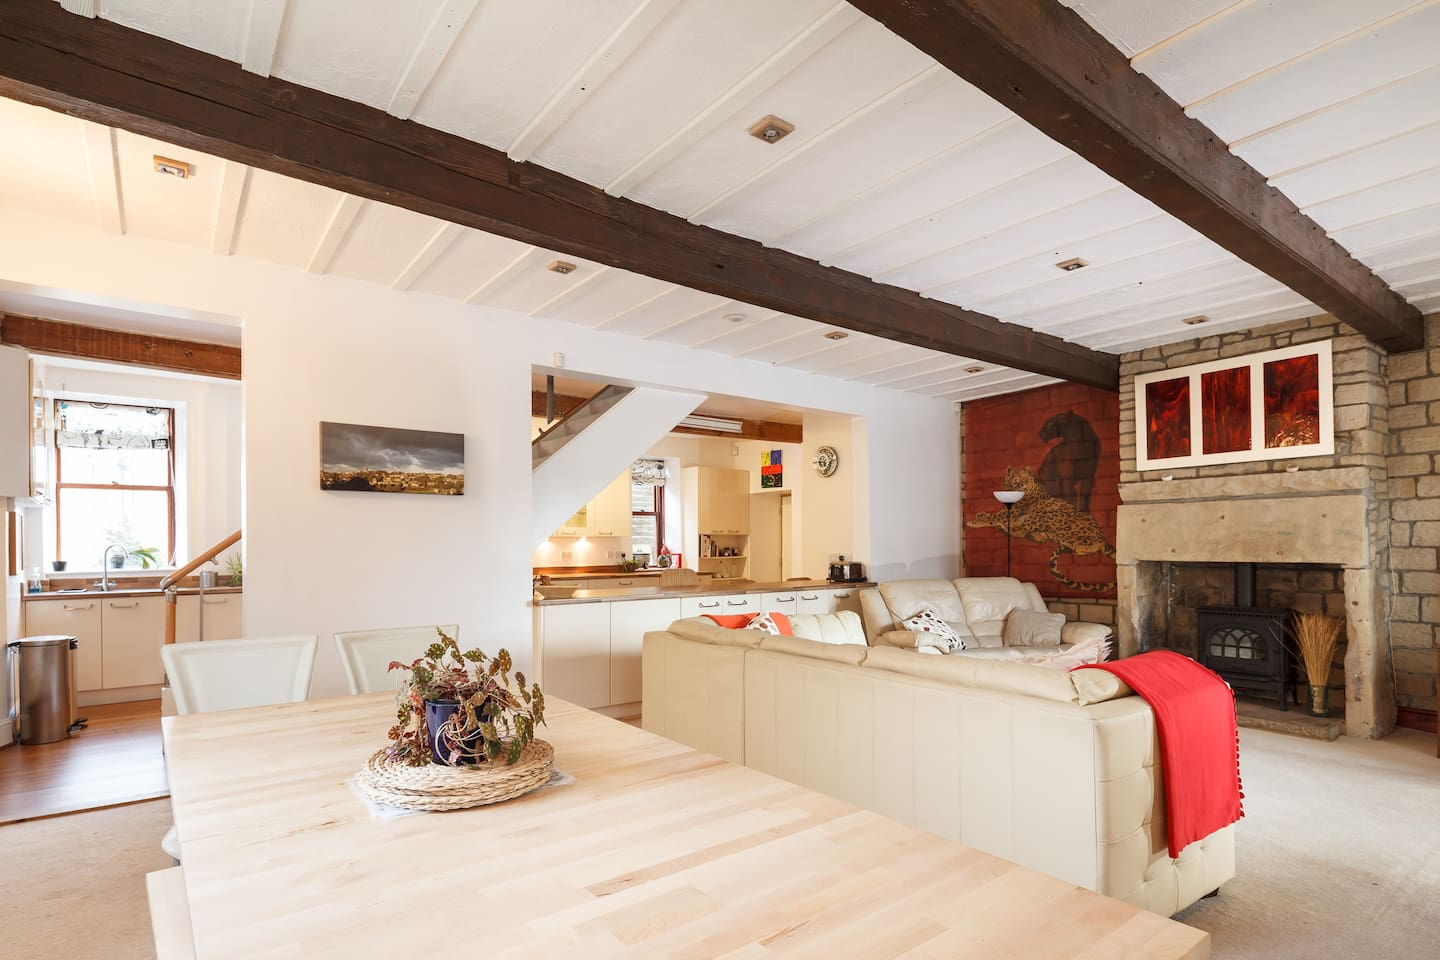 Main attraction of our house for guests to socialise, the open plan downstairs, kitchen, lounge, dining area